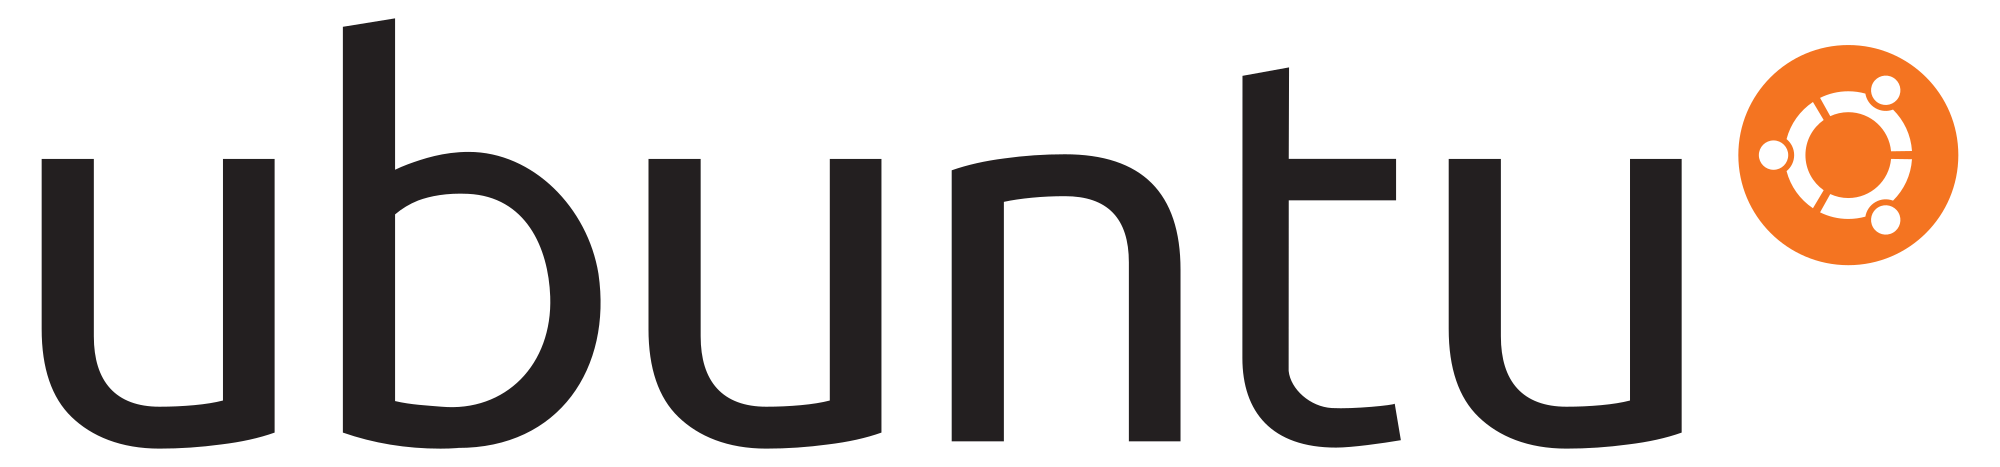 Official Ubuntu logo. Copyright Canonical Ltd.